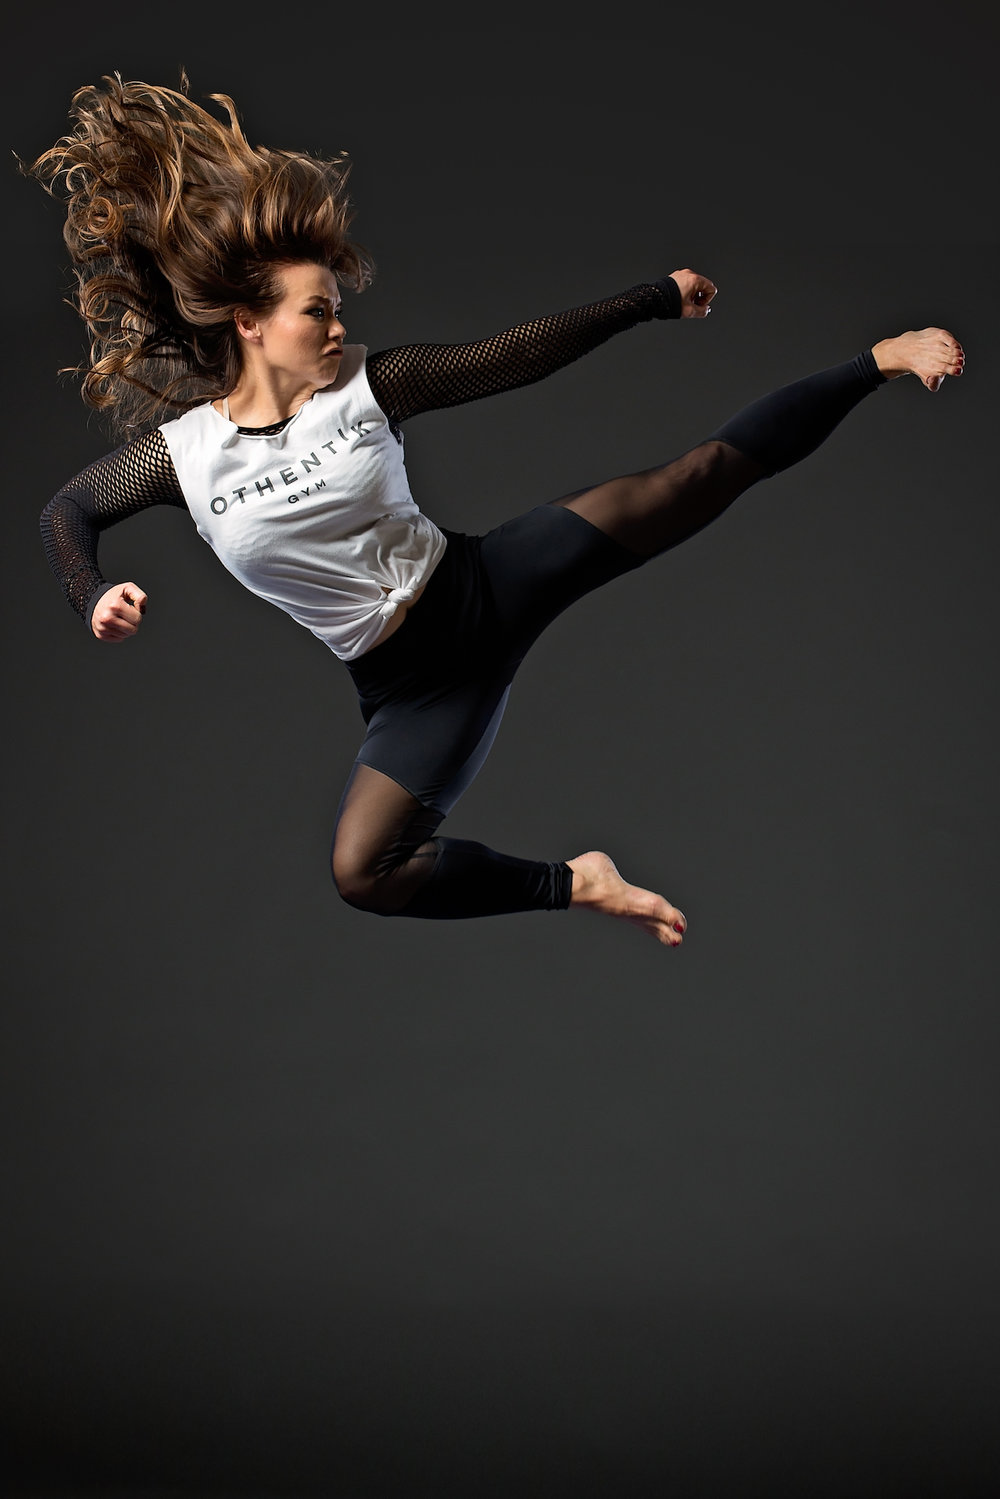 """Ka'imi Kuoha - Ka'imi is a SAG / AFTRA / EQUITY actor, working professionally since she was 2 years old. She was a competitive gymnast for 5 years and is also a dancer and jazz singer. She is a 7th-degree black belt in Kempo with 30 years of experience. She also trained in Kung-Fu (13 years), Aikido (20 years) and Arnis stick fighting. She has held the world record for female ice breaking since 2010 and she was named one of the """"Top 10 Female Martial Artists in the World"""" in 2013. Continue From 1993-1999, she was rated #1 in 3 regions. She has been featured on the cover of martial arts magazines around the world.Ten years ago, when her daughter was an infant, Othentik Gym CEO and founder Ka'imi Kuoha needed a way to get back into her training regimen. The mother and baby classes she found at the time were limited, and much of the inspiration for Othentik Gym grew from that need for a space where mothers could work out with their babies, rather than just placing them in day care. The Othentik Mini & Me Bootcamp program allows moms to meet their own fitness needs while spending quality time with their babies. To make things even easier, there are classes for older siblings at the same time, so the whole family can enjoy the benefits of an active life. Throughout her years of training as a martial artist, Ka'imi found that she needed to learn various styles of martial arts, and even different disciplines like dance and yoga, to become a balanced athlete. She spent a lot of time traveling from studio to studio for those classes and even to other states and countries.At OTHENTIK Gym, Ka'imi and her partners have created a place where students can access a well-rounded training curriculum, with world-class teachers from many disciplines, all under one roof. Her ultimate goal is to is to be an example for her daughter; to empower her, and all women, to create a healthy world for themselves and their families."""